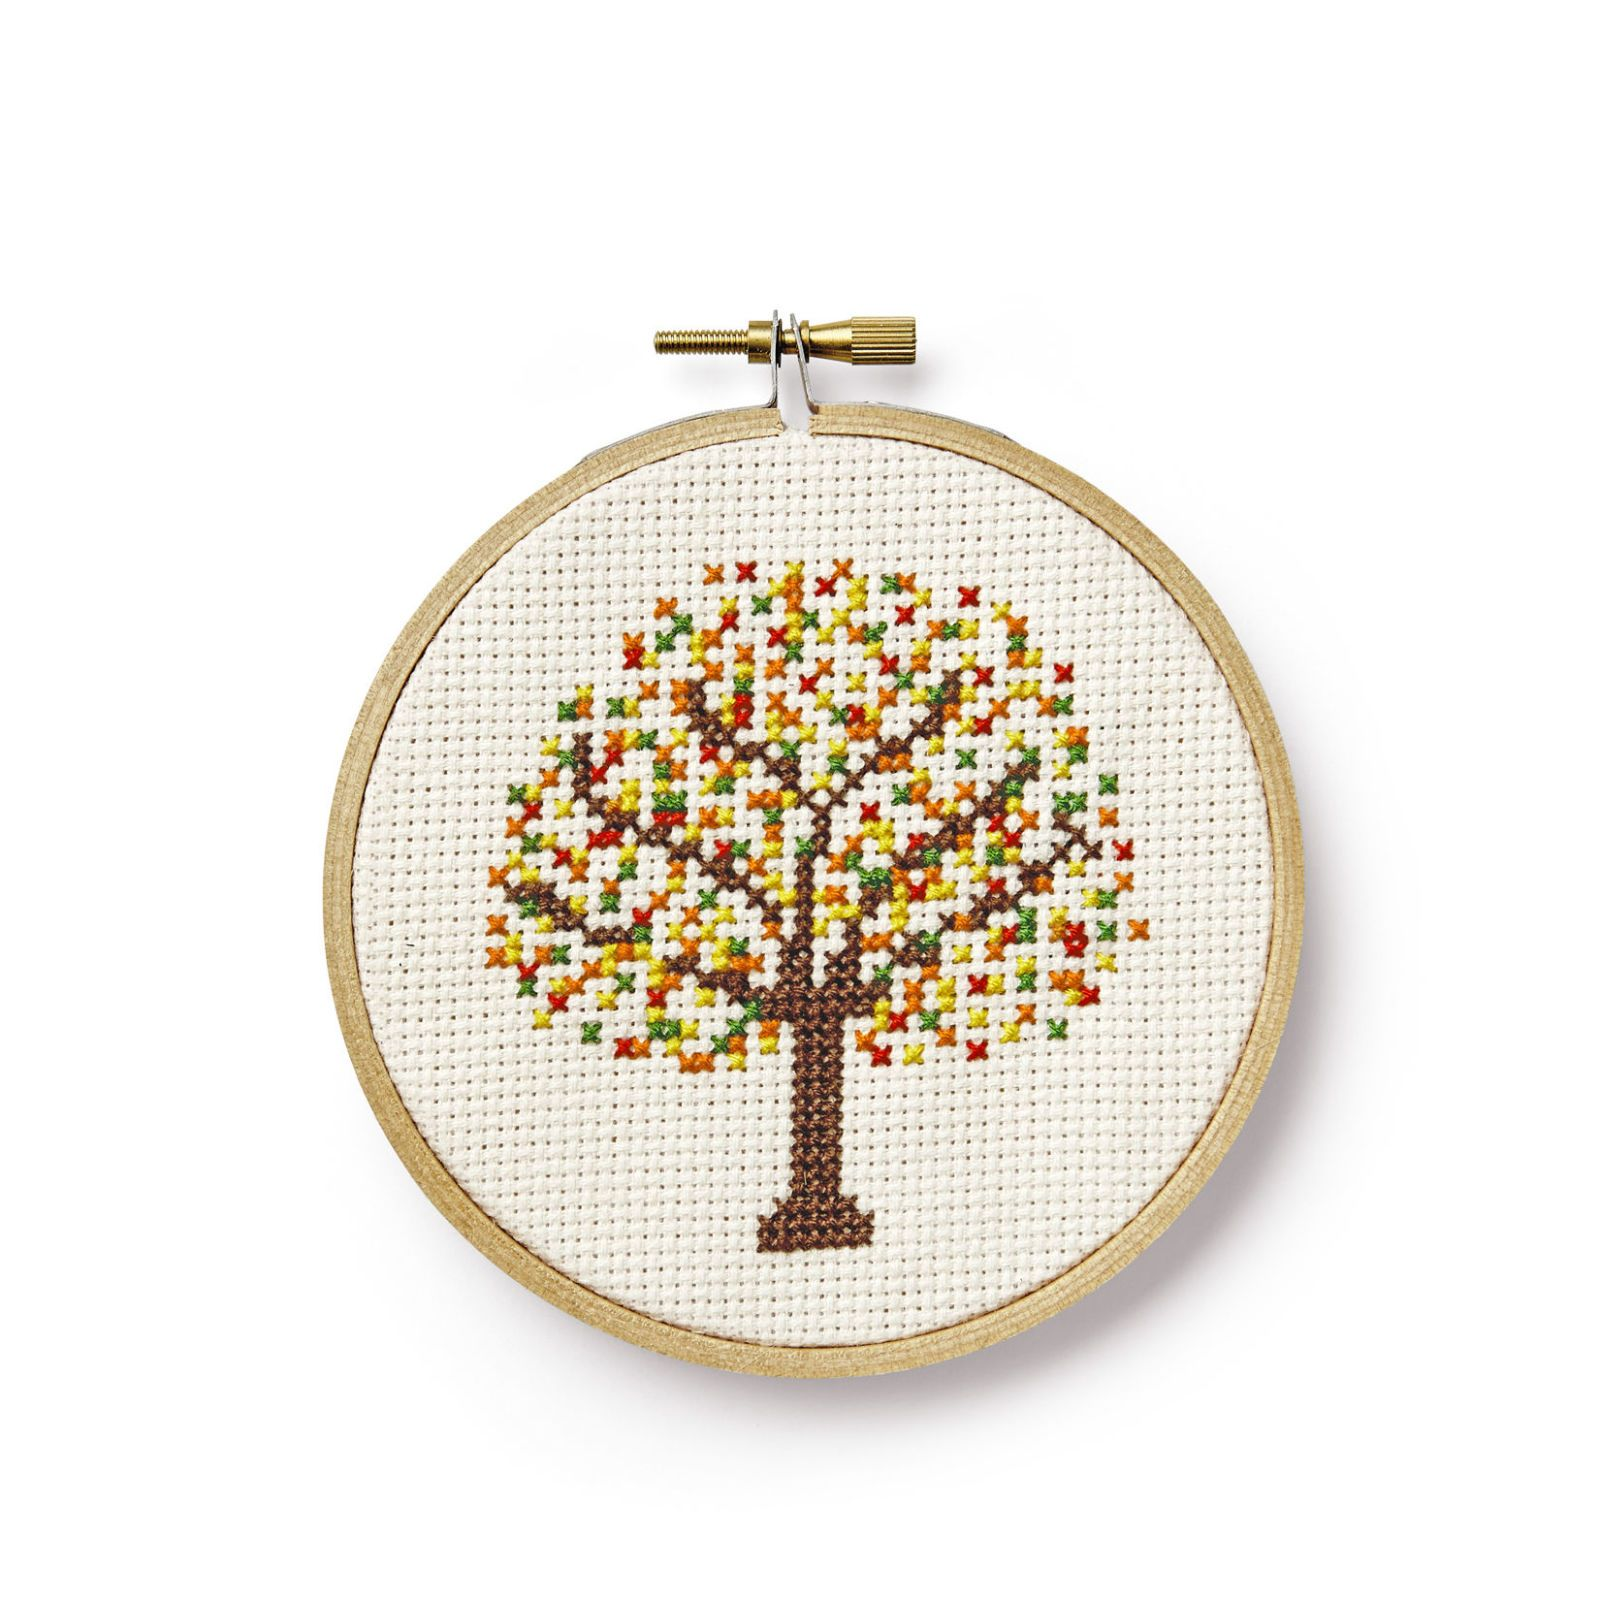 Home & Garden United Available Factory Sale Cross Stitch Kit Embroidery Package Printed Fabric Green Tree Or Pink Tree Choose One